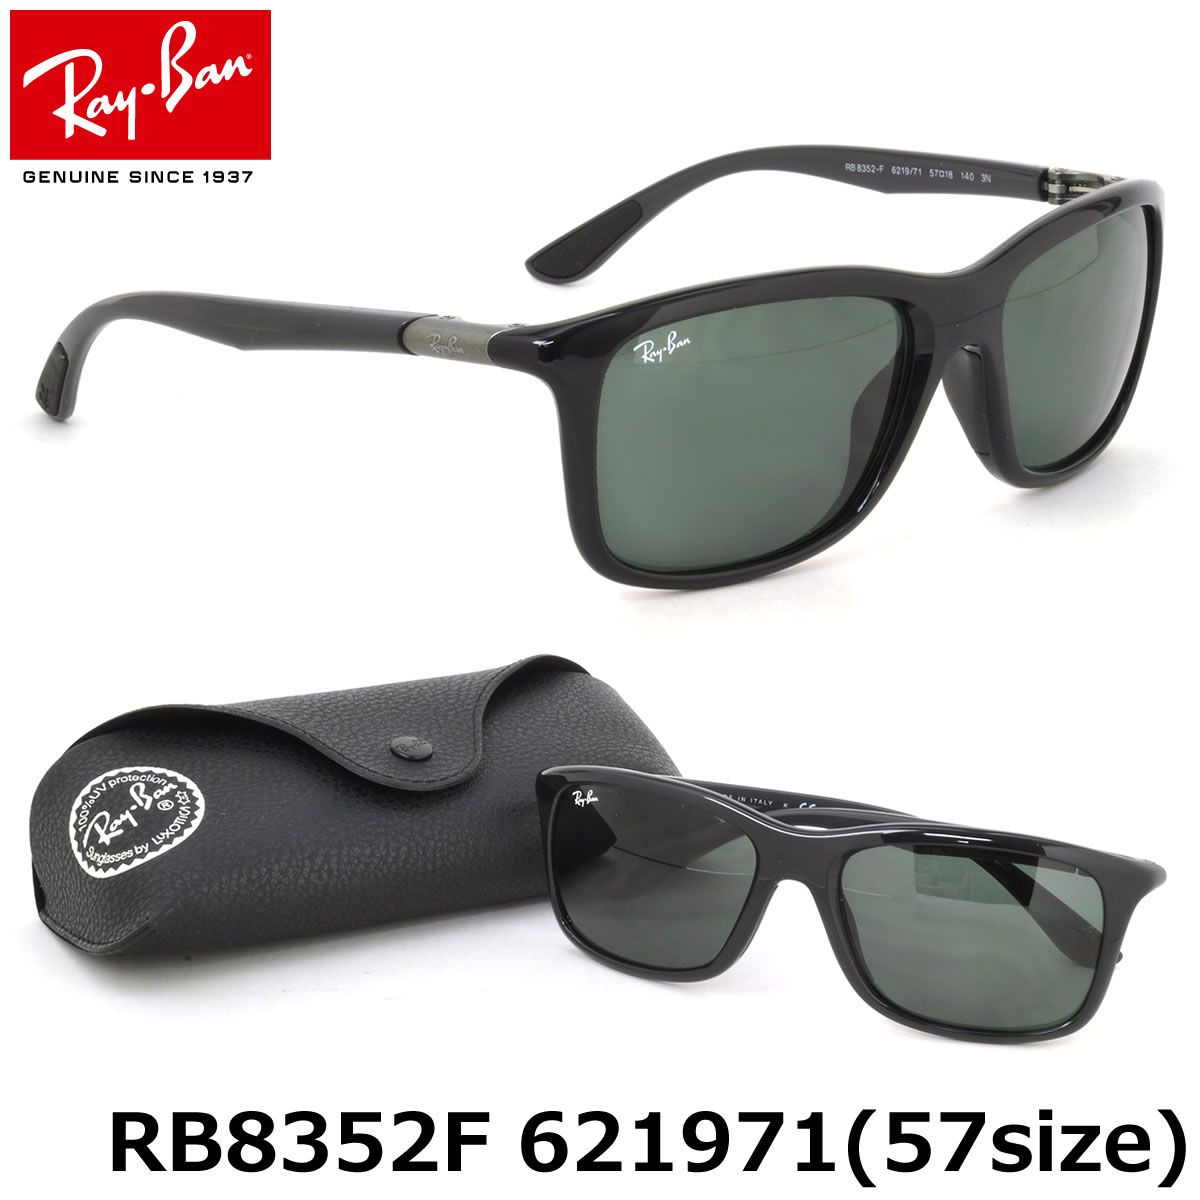 57e22656ea Sunglasses of the Ray-Ban TECH (Ray-Ban technical center) collection that  let a tradition and the latest technology fuse of Ray-Ban.